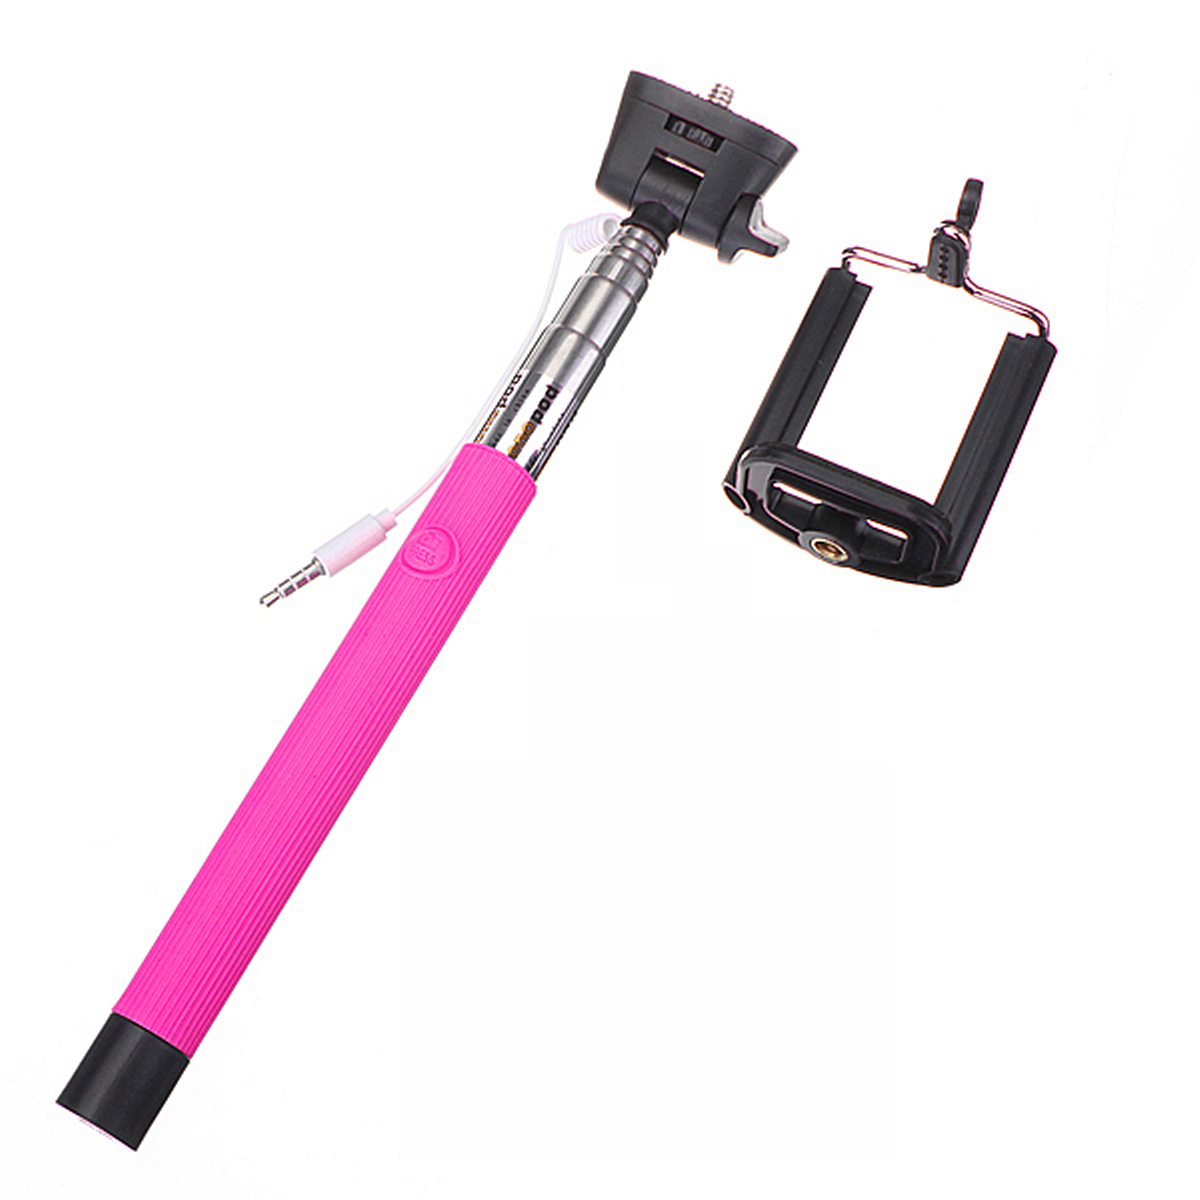 telescopic handheld monopod selfie stick for iphone 6 6 plus sony htc lg moto pink. Black Bedroom Furniture Sets. Home Design Ideas